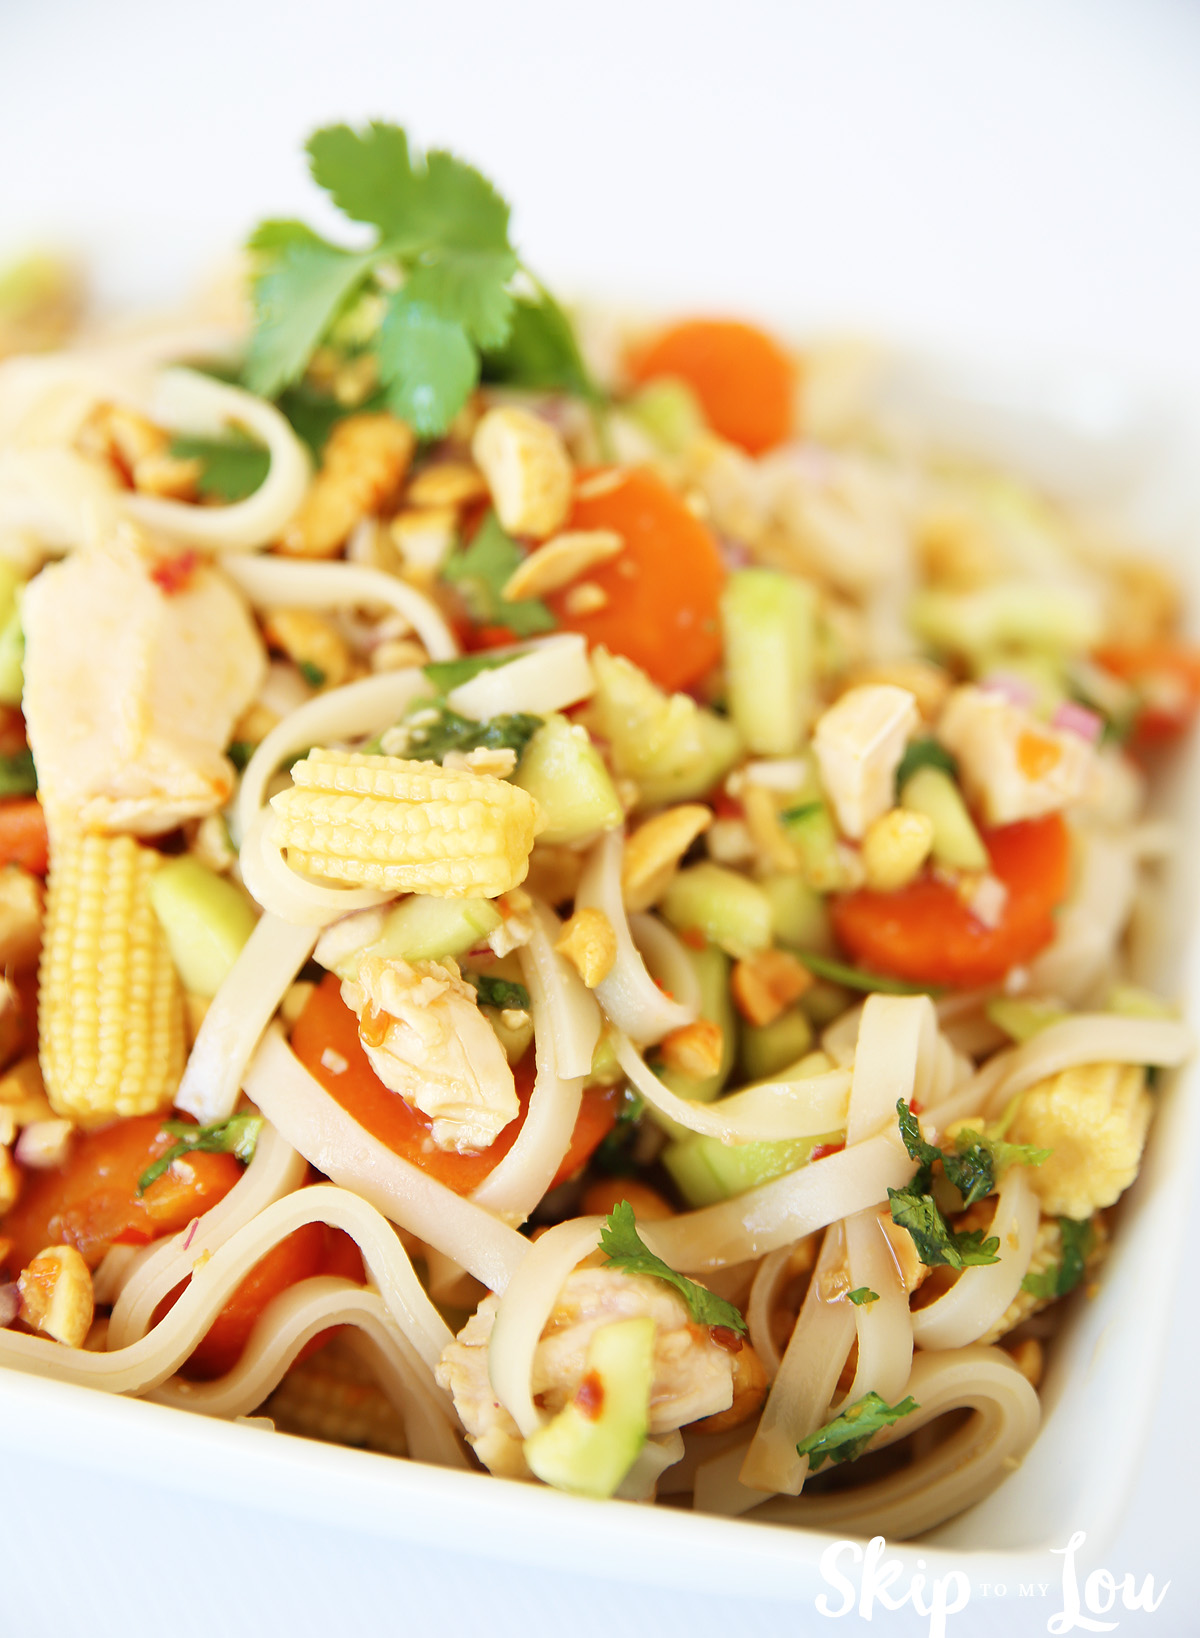 Malaysian Tangy Rice Noodle Salad